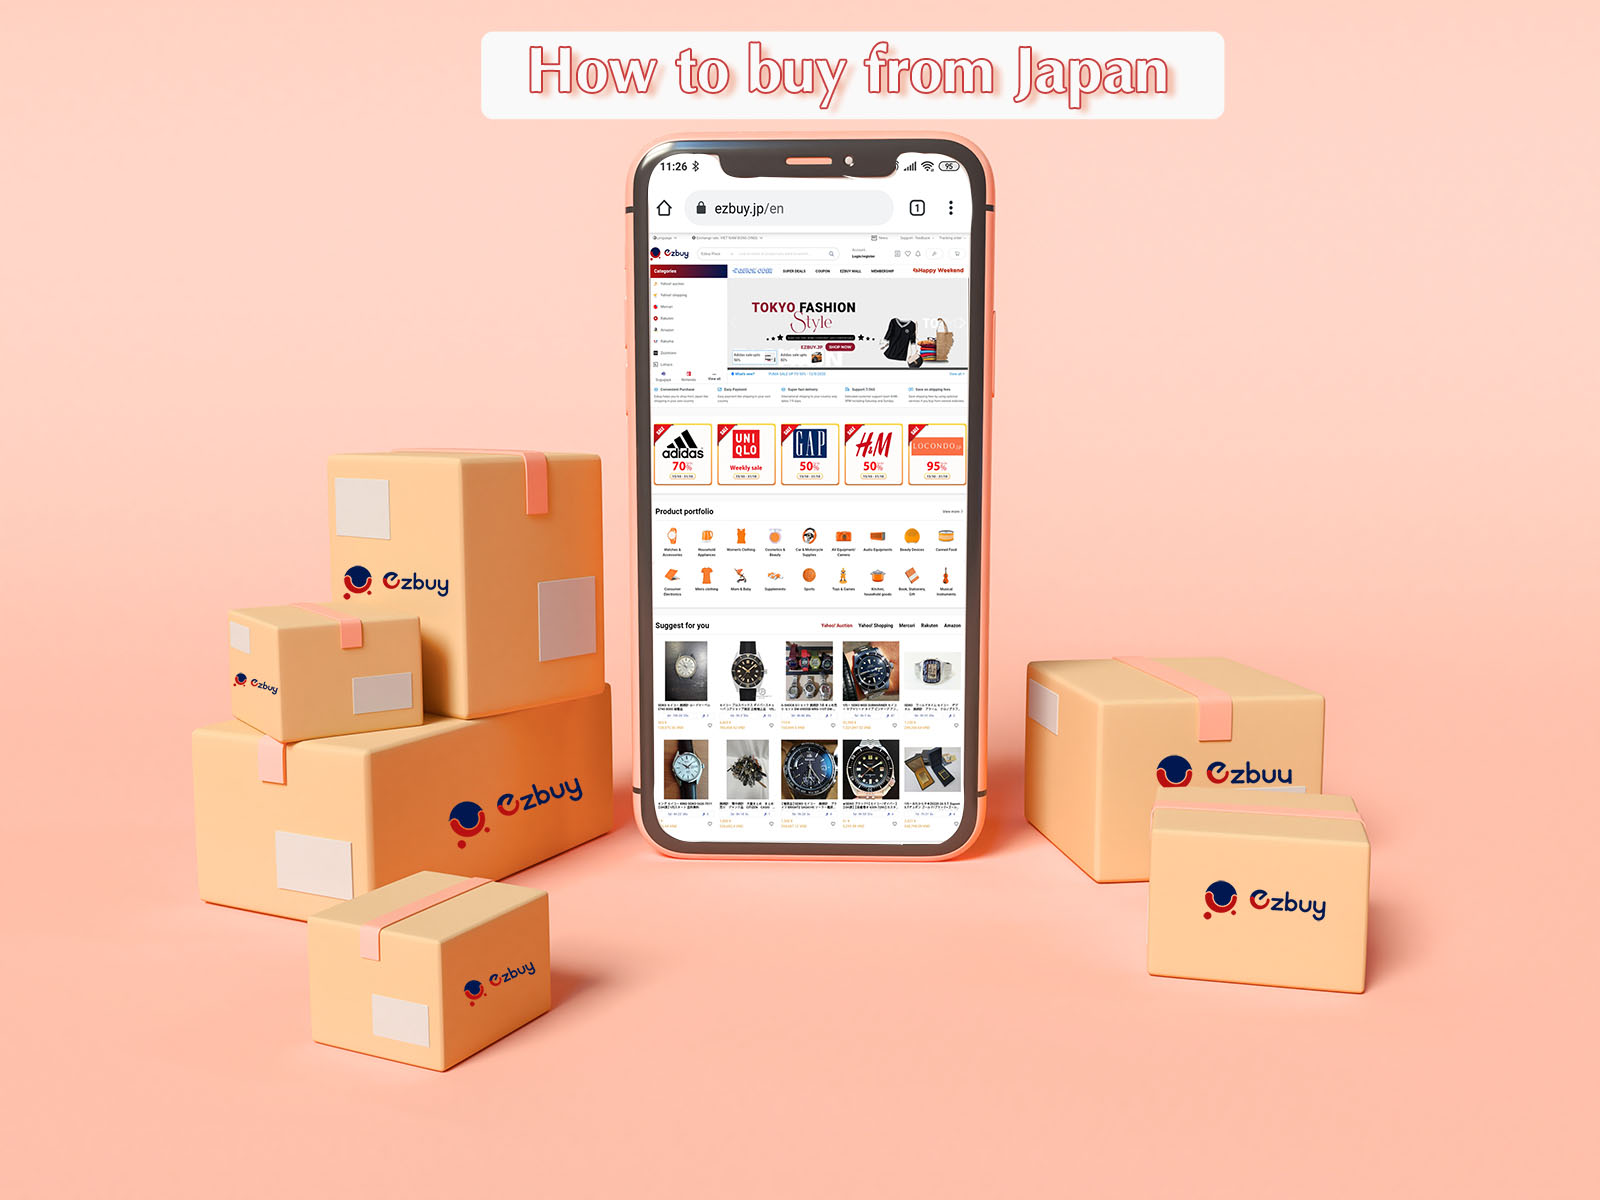 How to buy from Japan